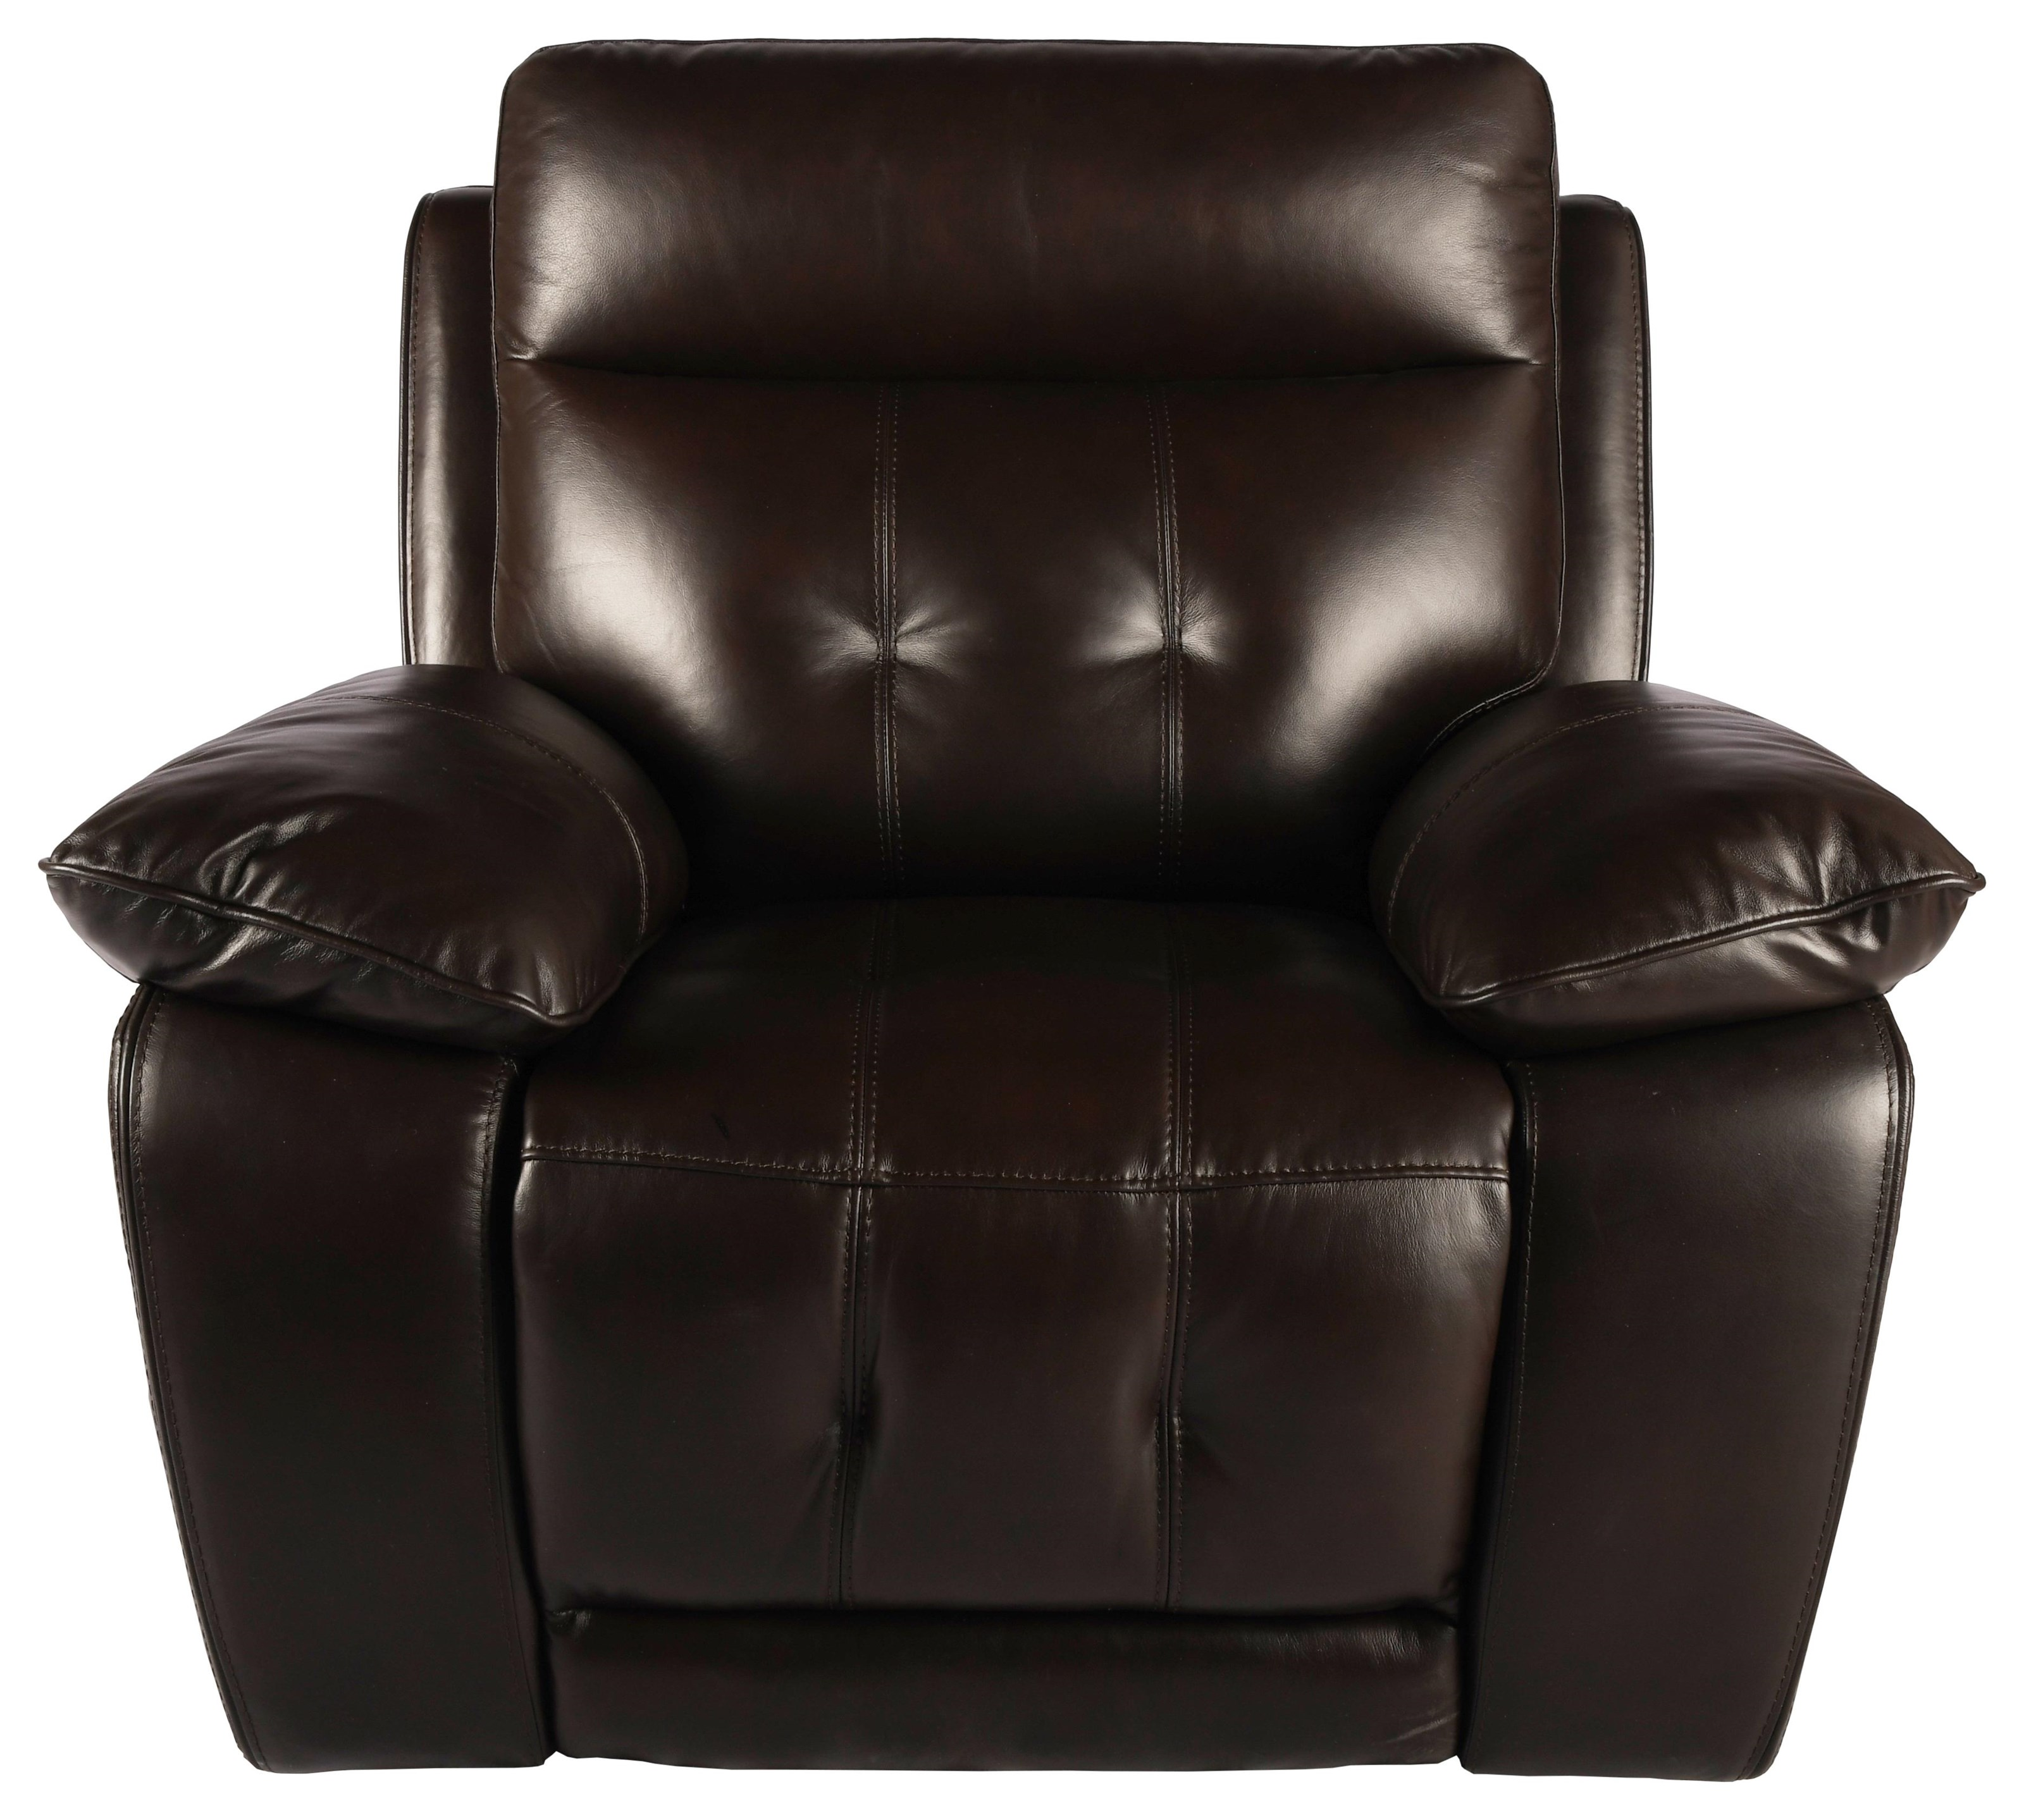 31724 Power Motion Chair at Bennett's Furniture and Mattresses